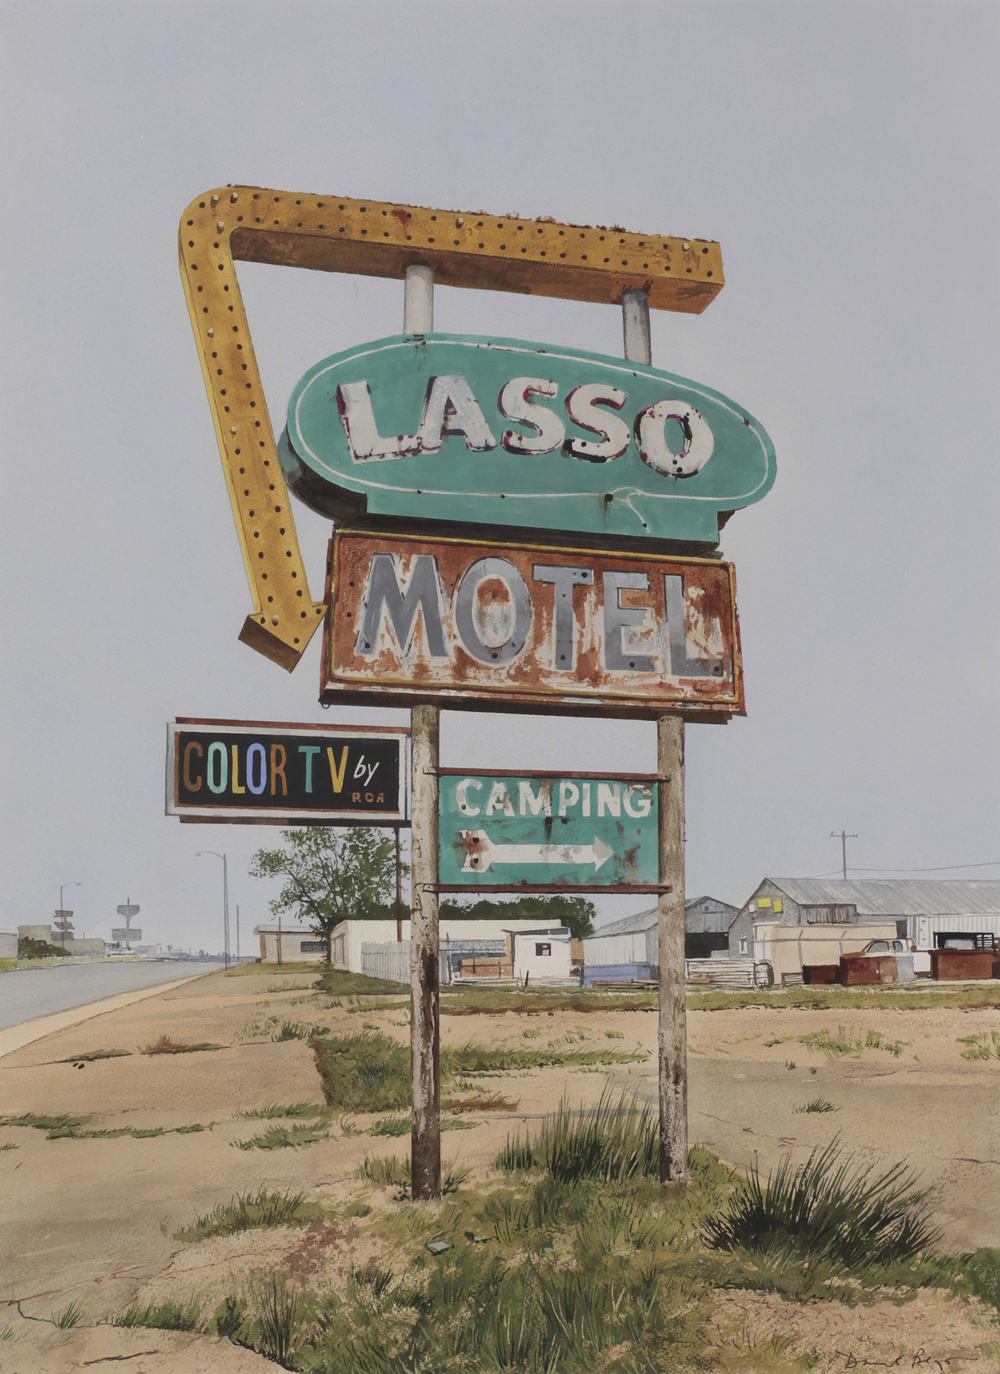 "Daniel Blagg, The Lasso, 2012, watercolor on paper, 37 x 28"". Private Collection, Fort Worth, TX."